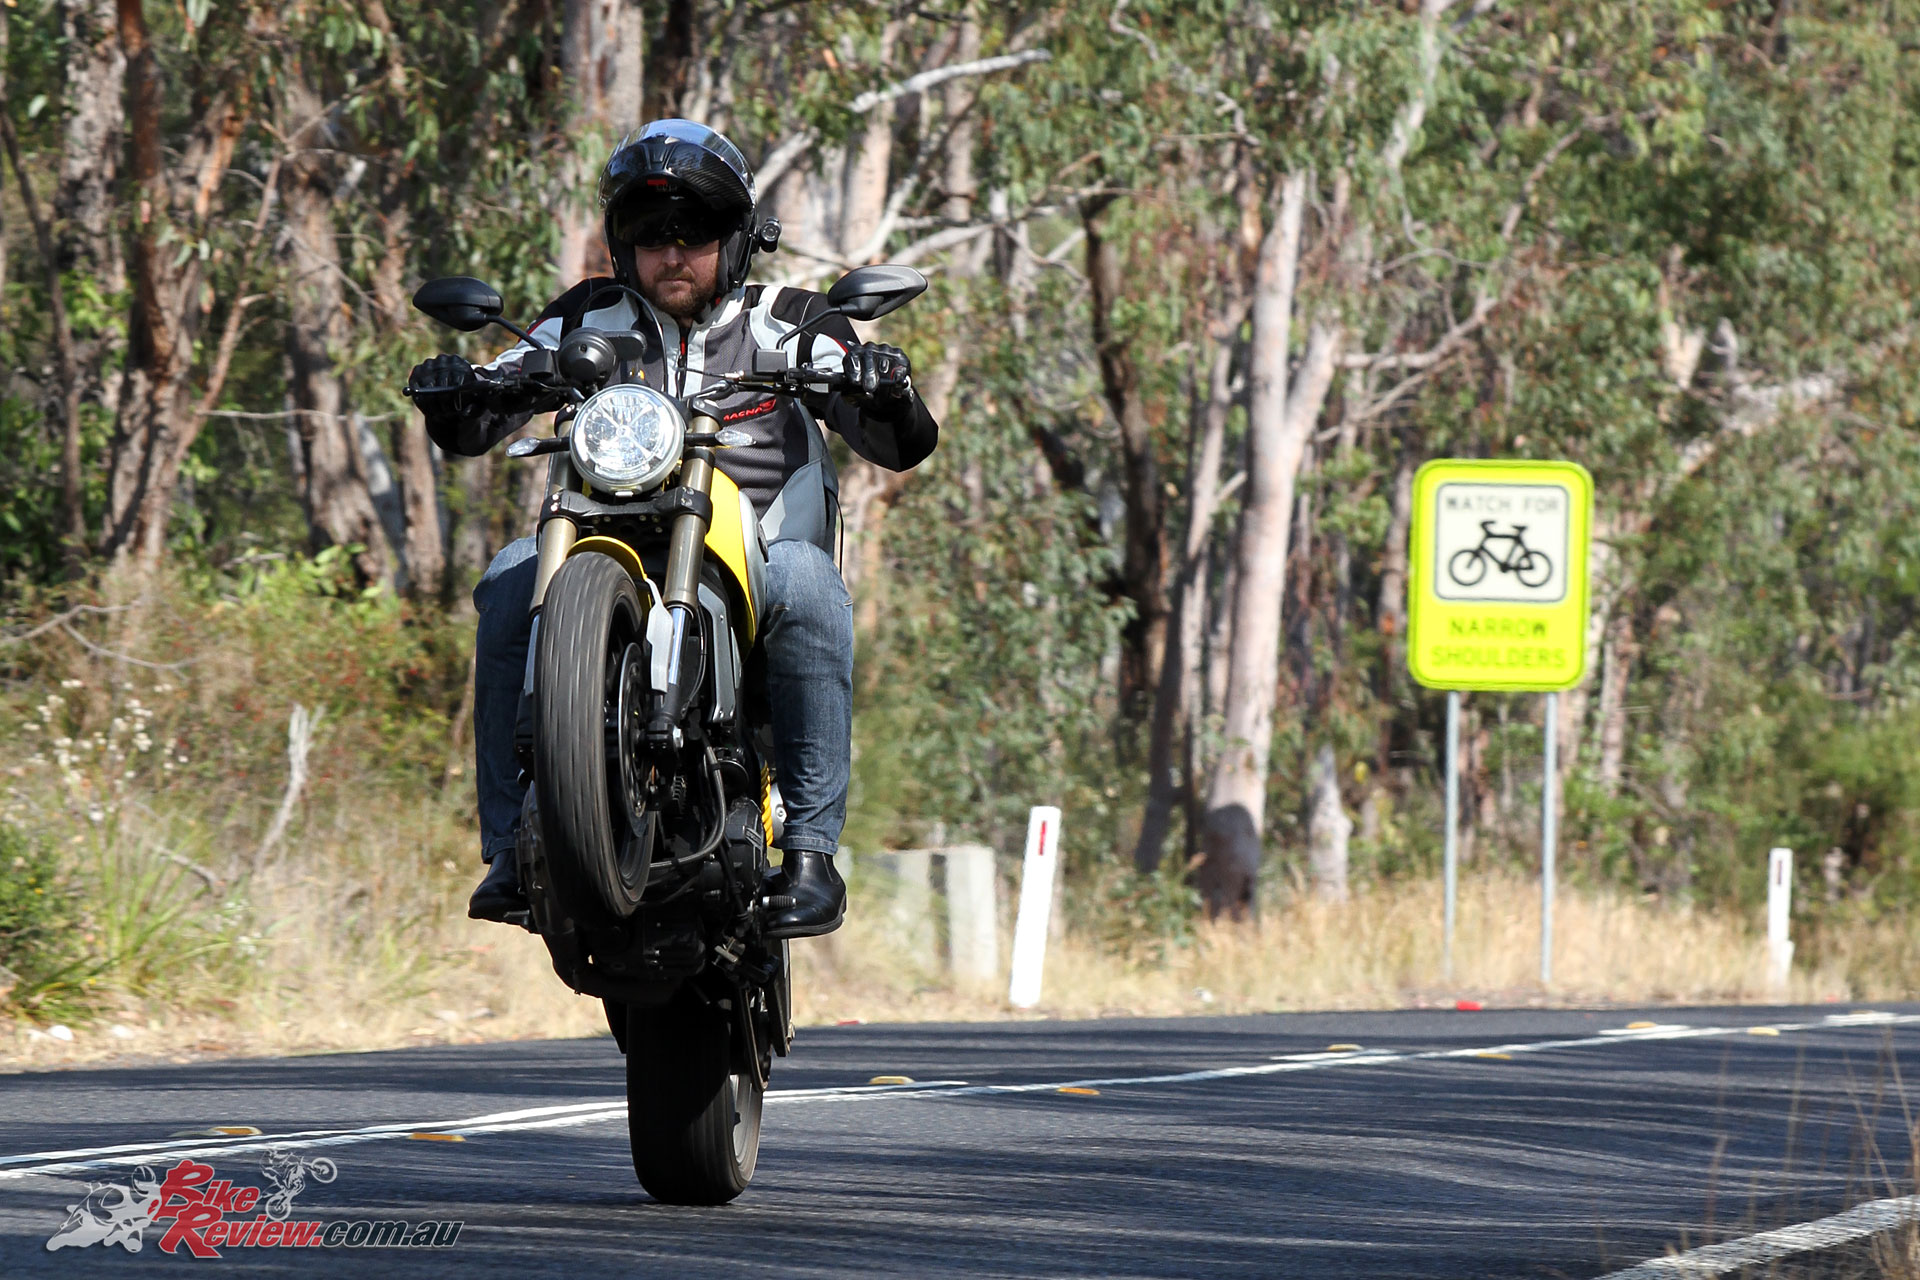 2018-Ducati-Scrambler-1100-Bike-Review-9245